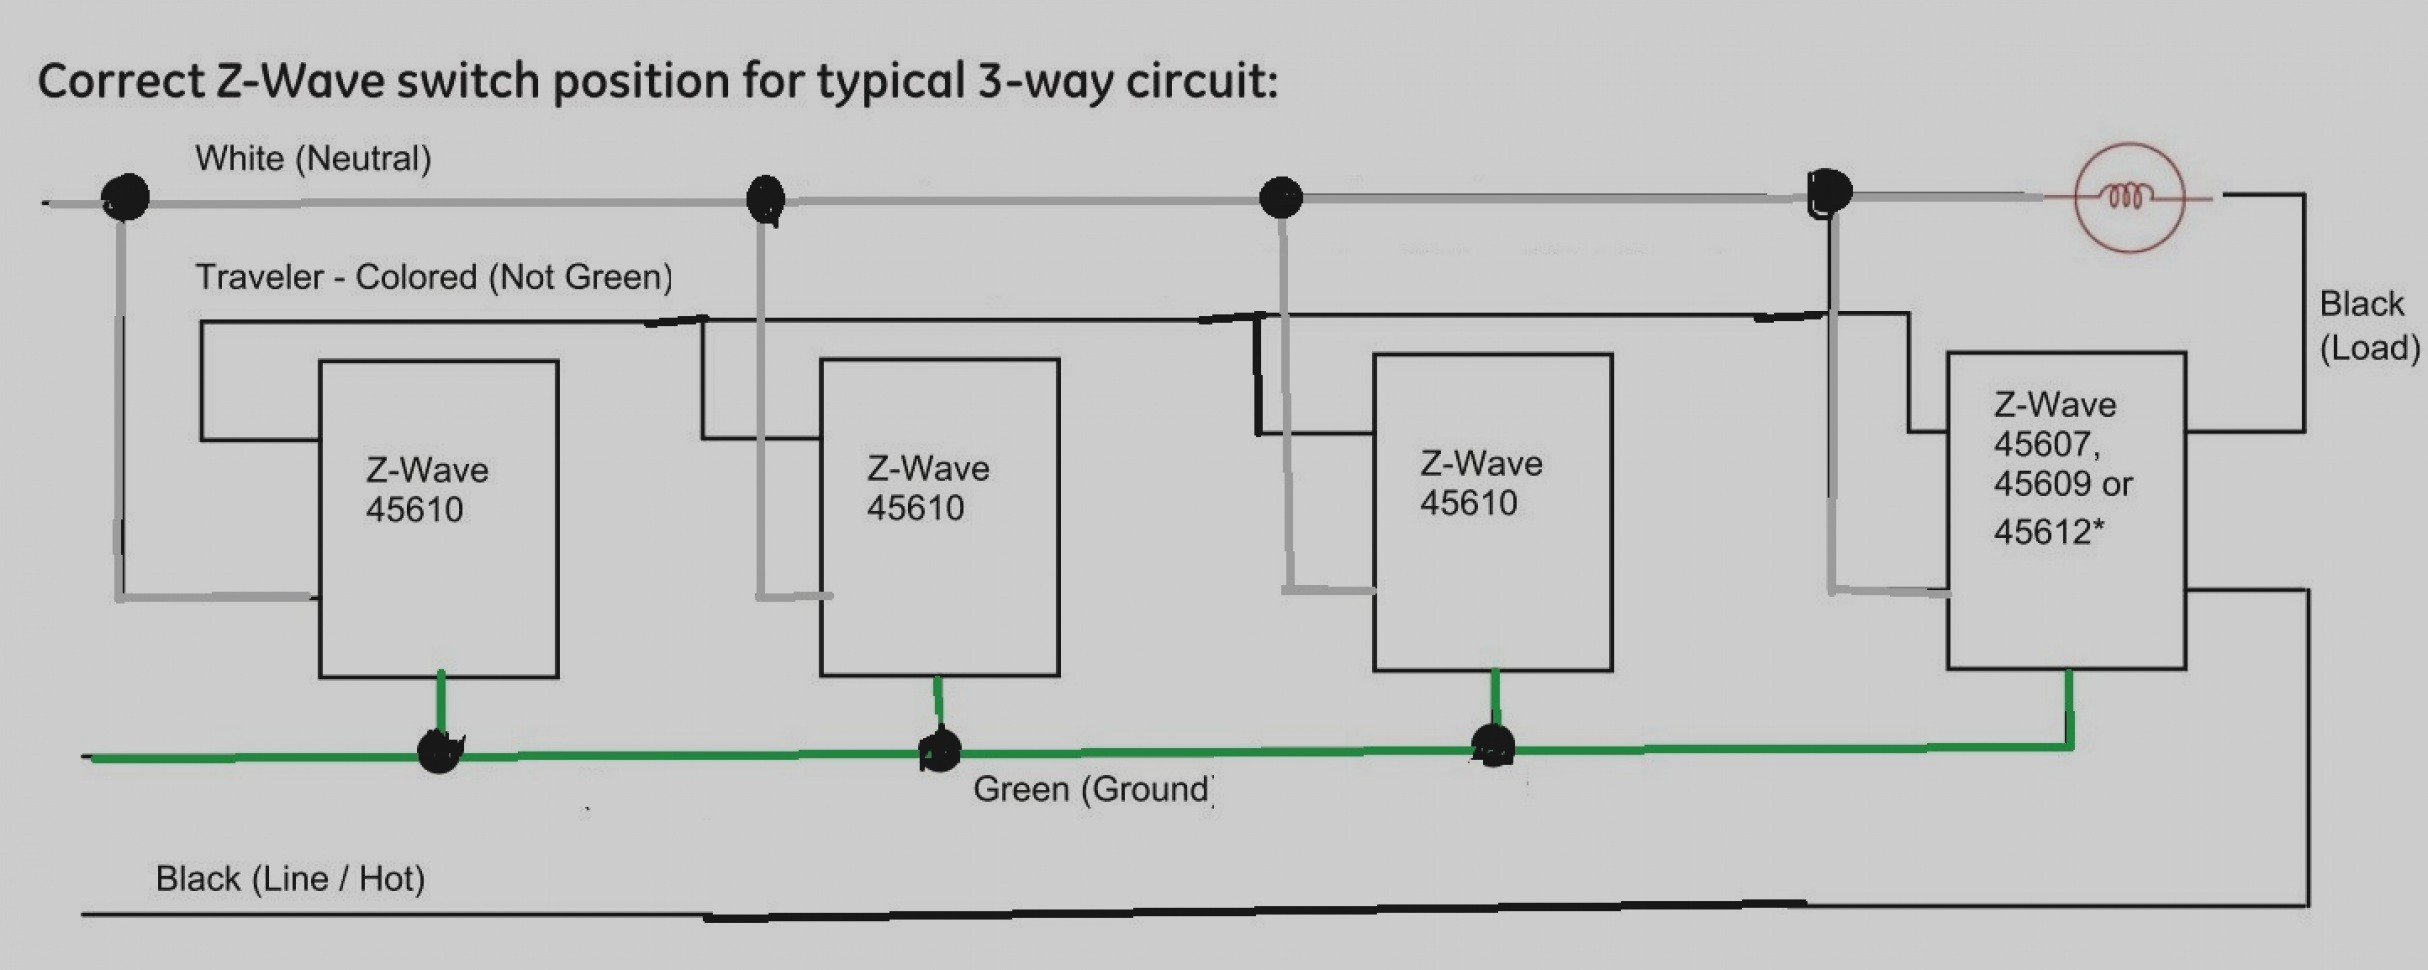 Latest Low Voltage Outdoor Lighting Wiring Diagram Pdf Free Z Wave Diagrams  Schematics. Pioneer Dxt-x2769ui ...